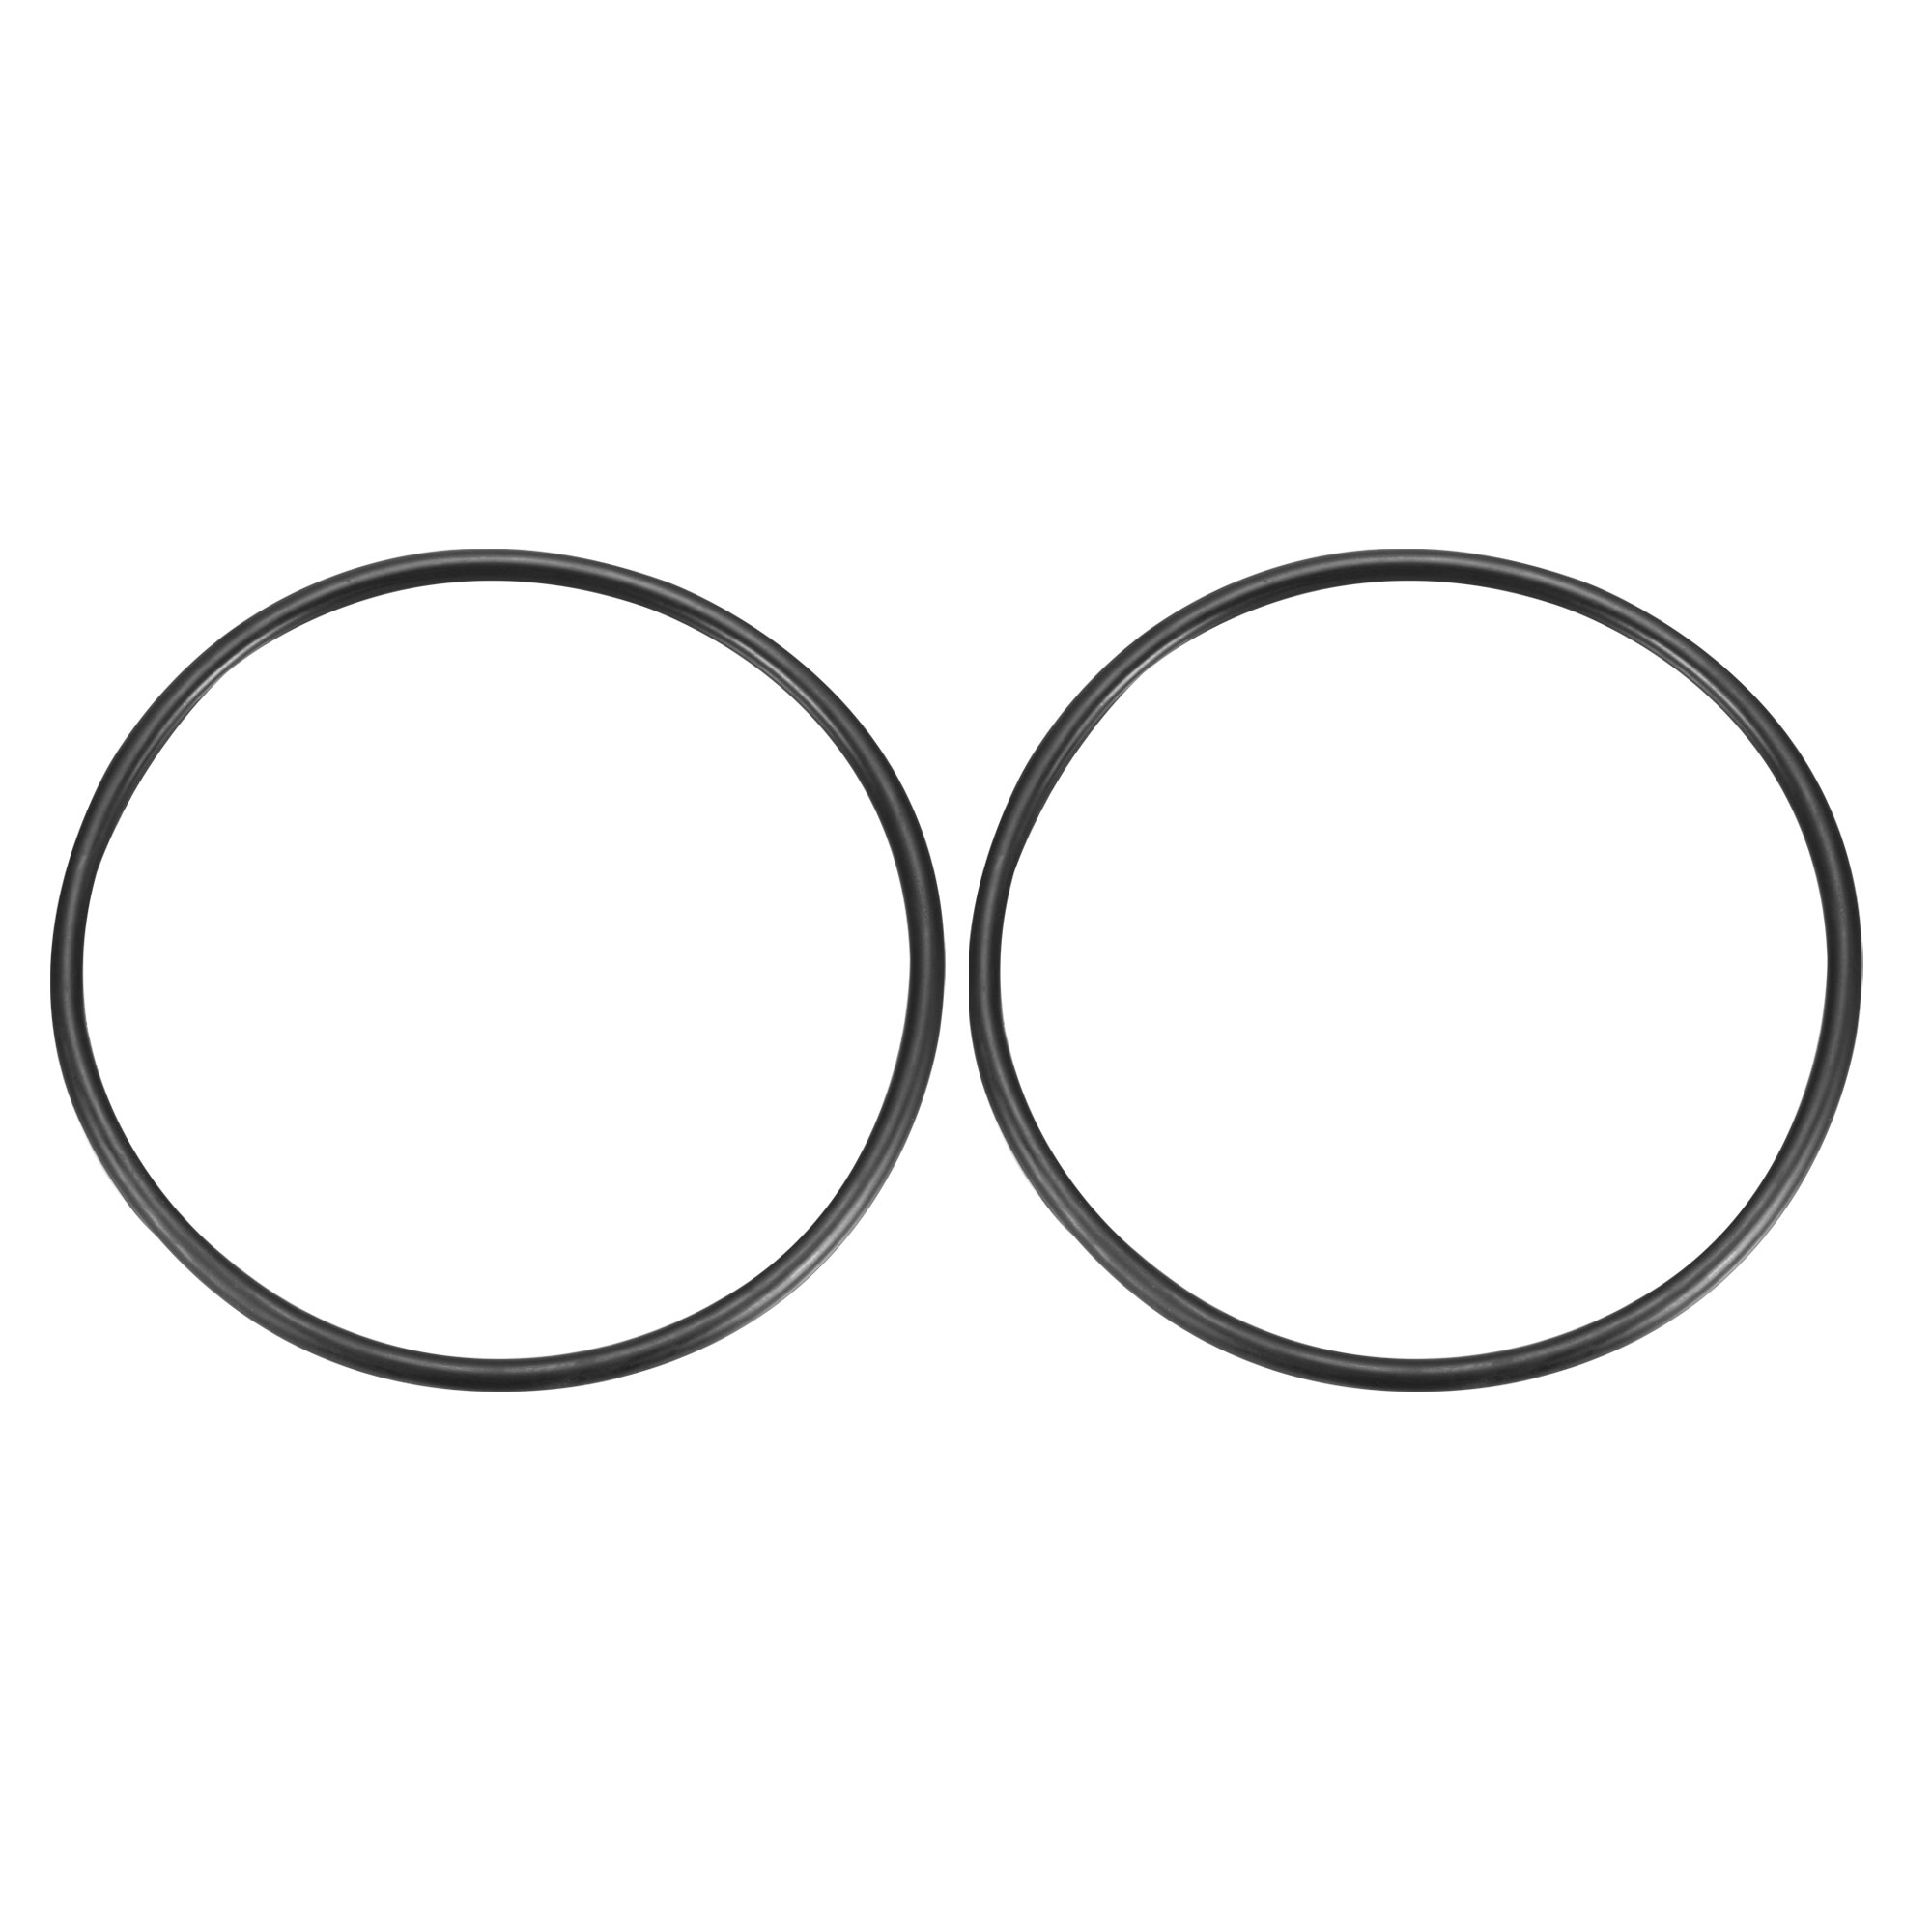 2Pcs Black Universal O-Ring 210mm x 8.6mm BUNA-N Material Oil Seal Washers Grommets